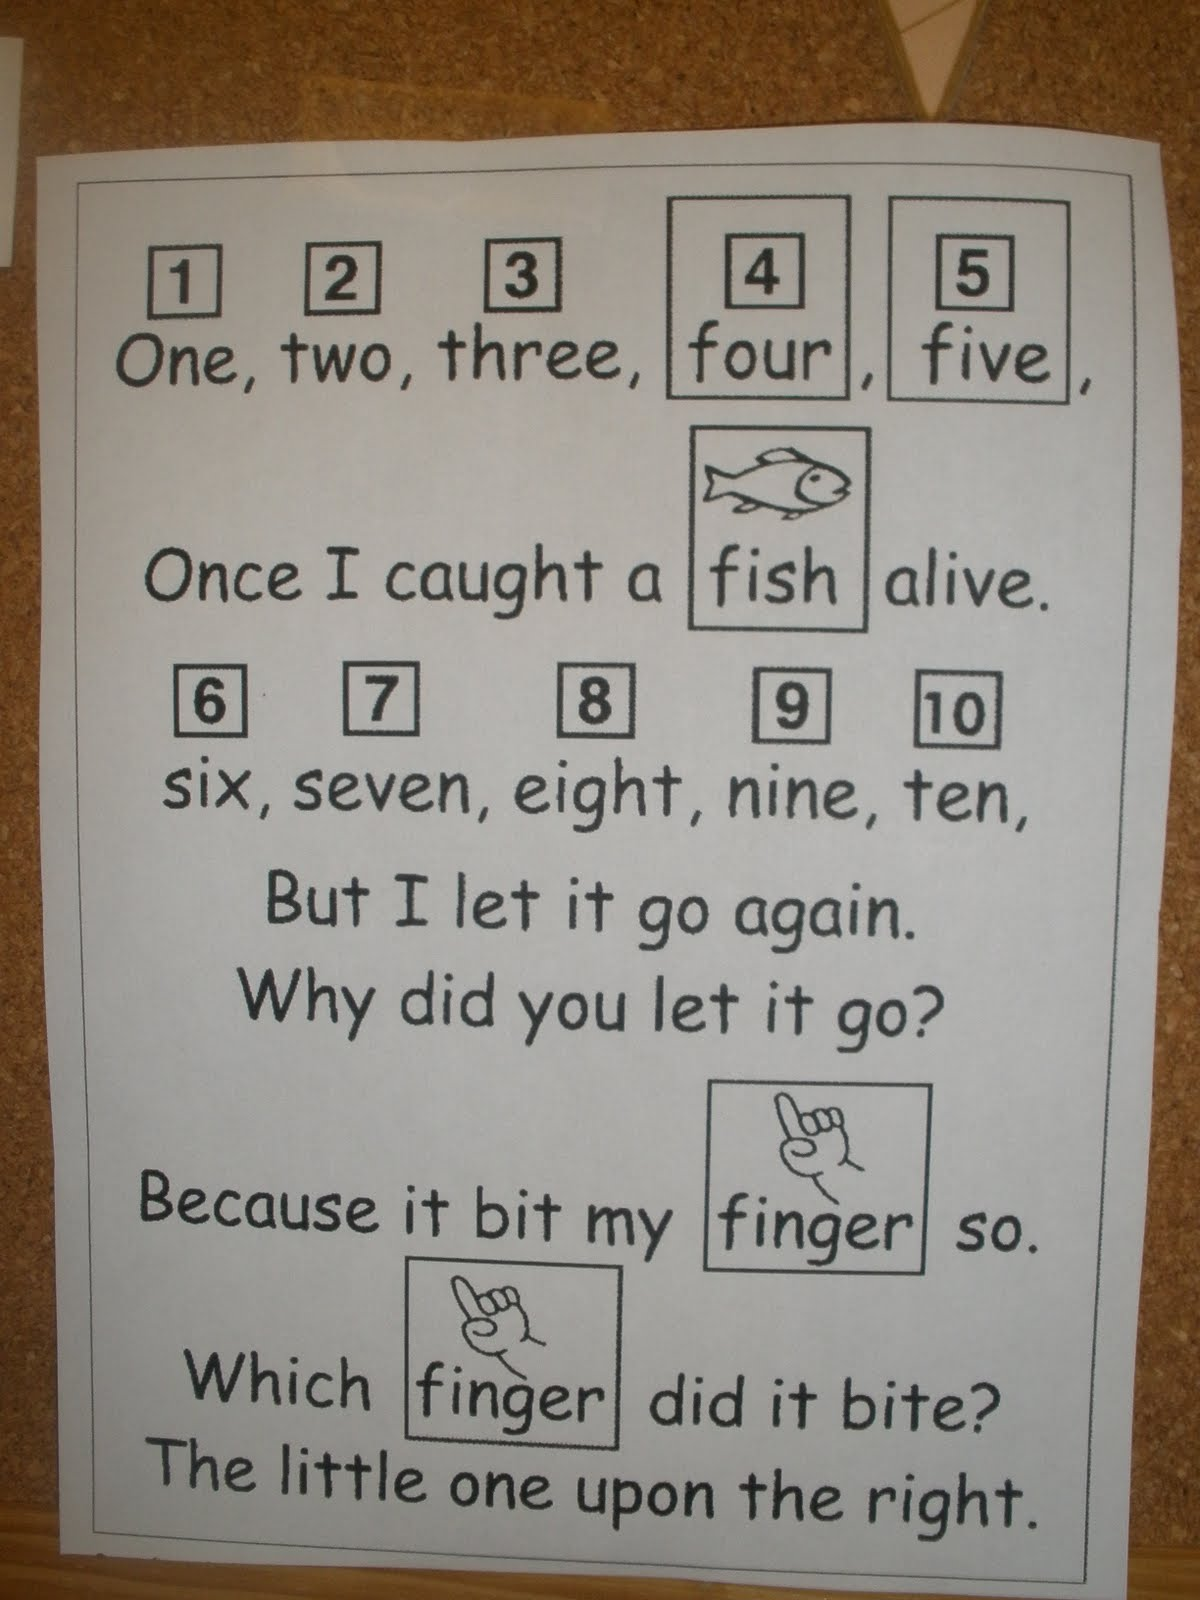 I Used To Have A Brain Preschool At My House